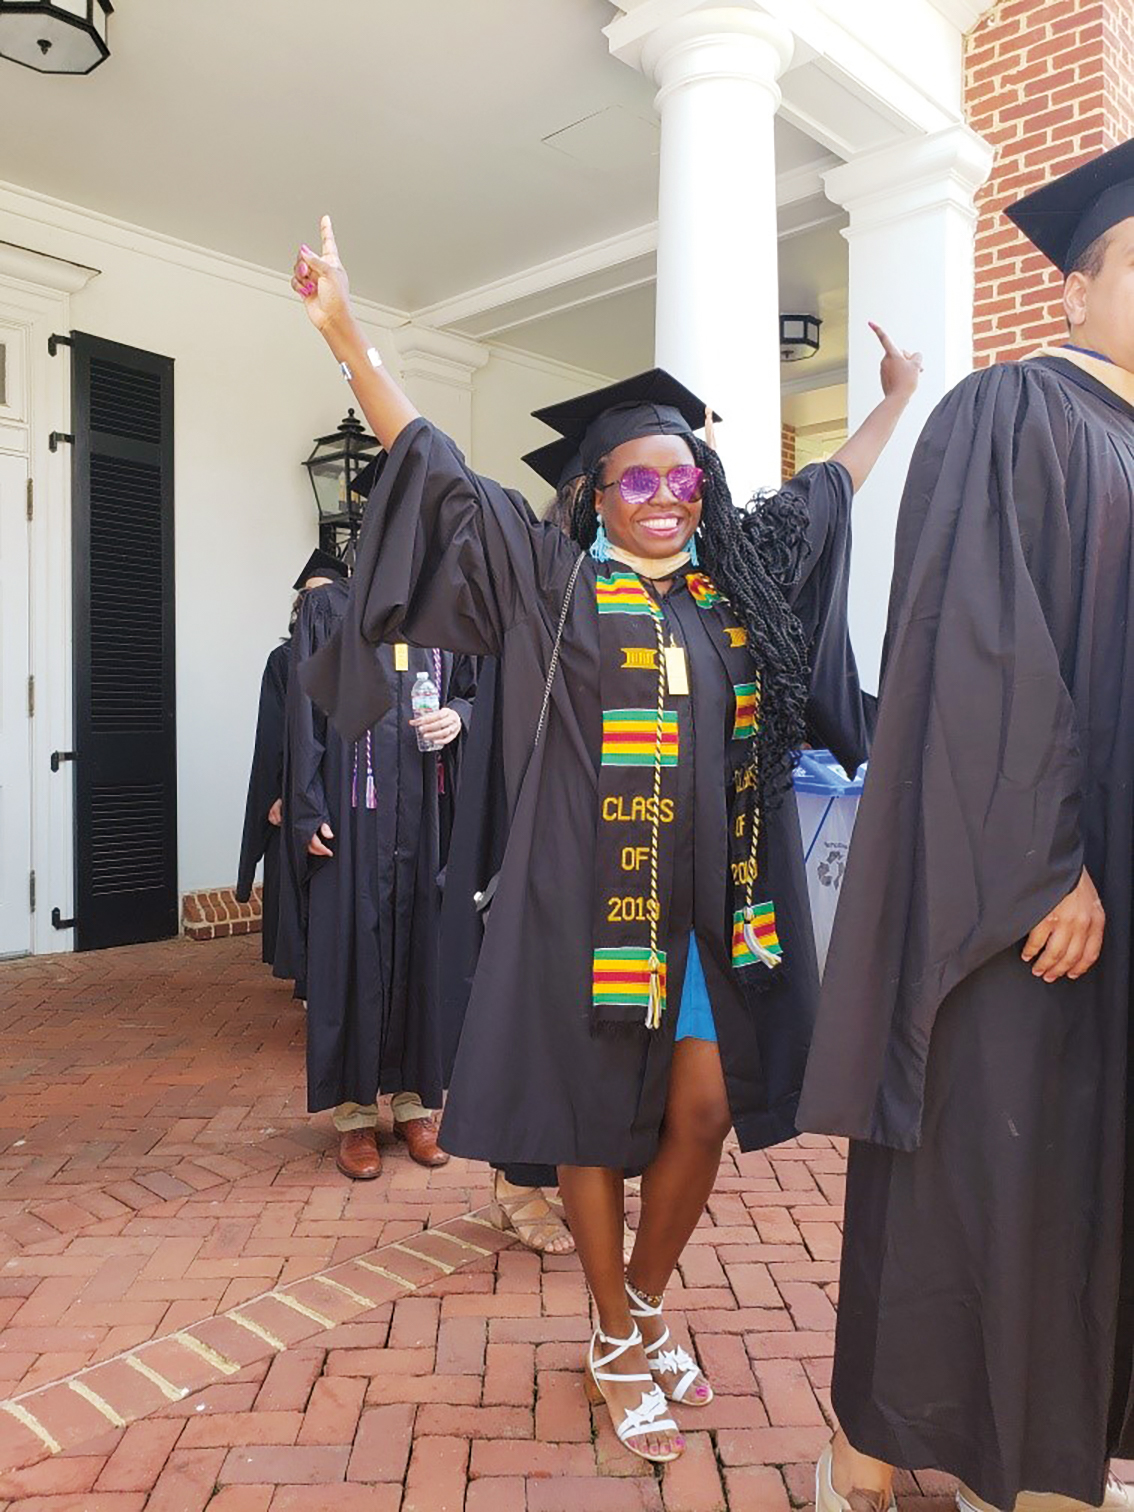 Cecily Sackey '08 graduated with her M.B.A. from UVA's Darden School of Business.